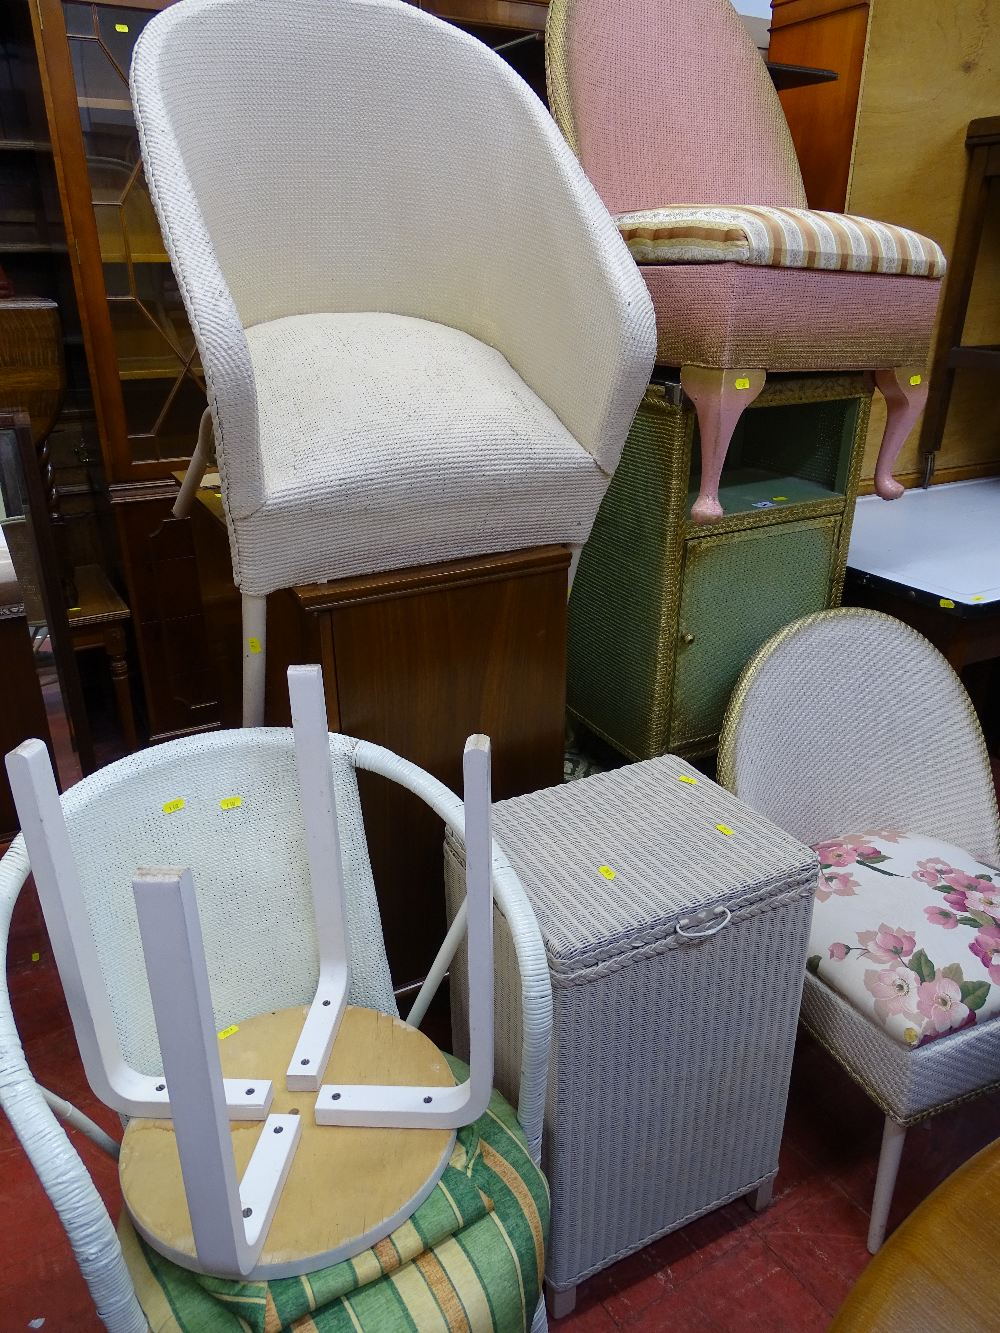 Lot 54 - Seven items of Lloyd loom style furniture and a circular topped stool